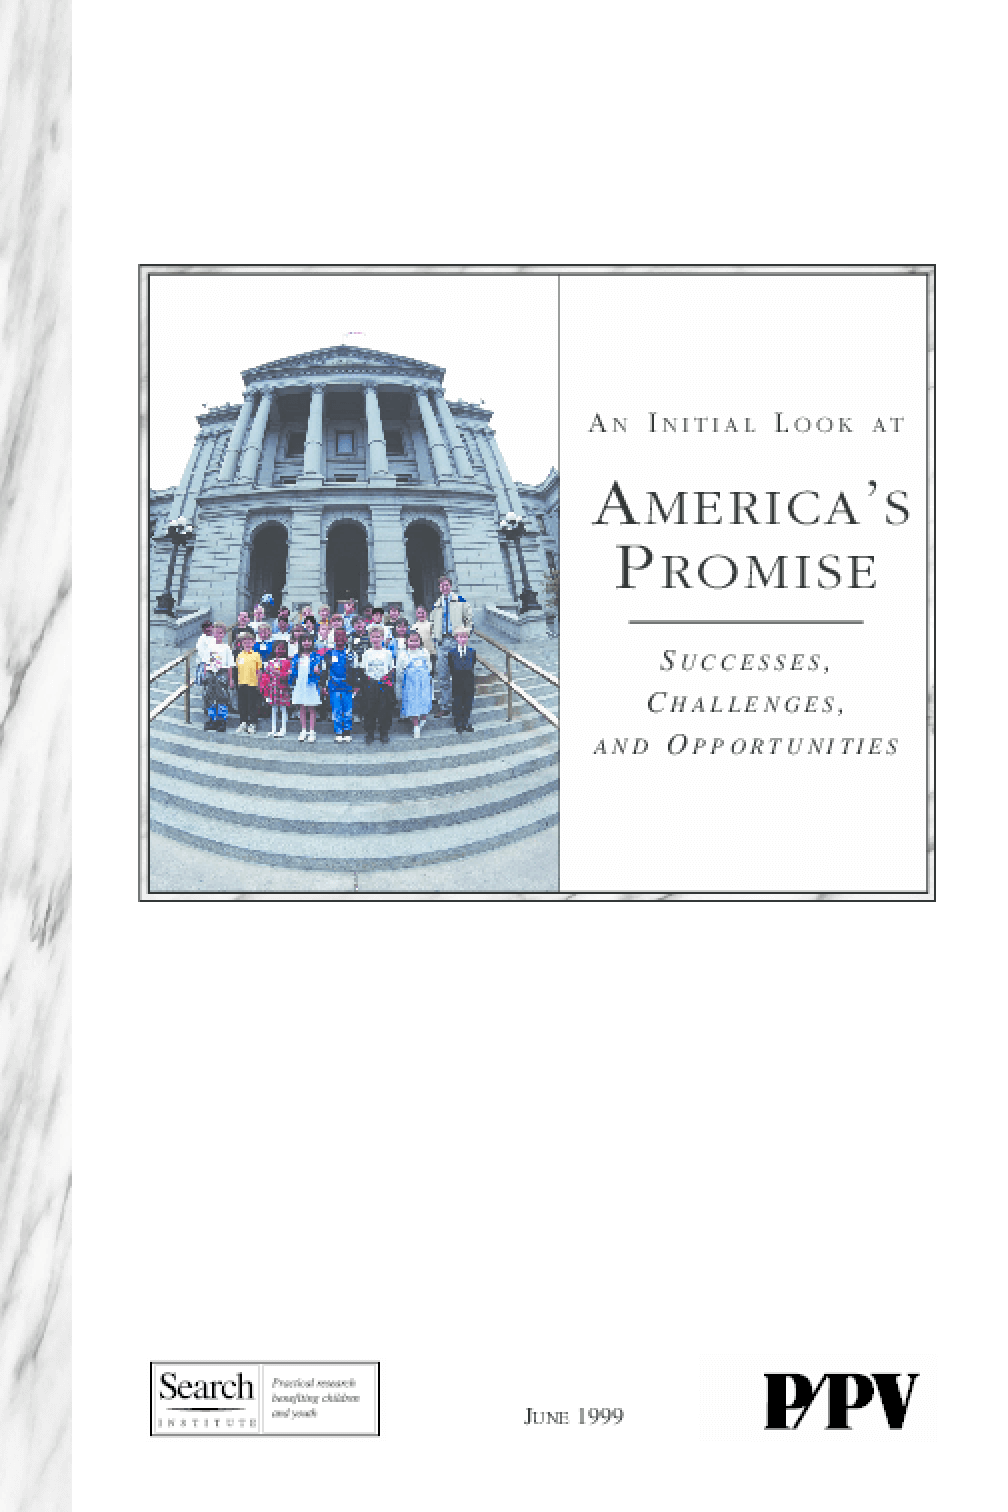 An Initial Look at America's Promise: Successes, Challenges and Opportunities